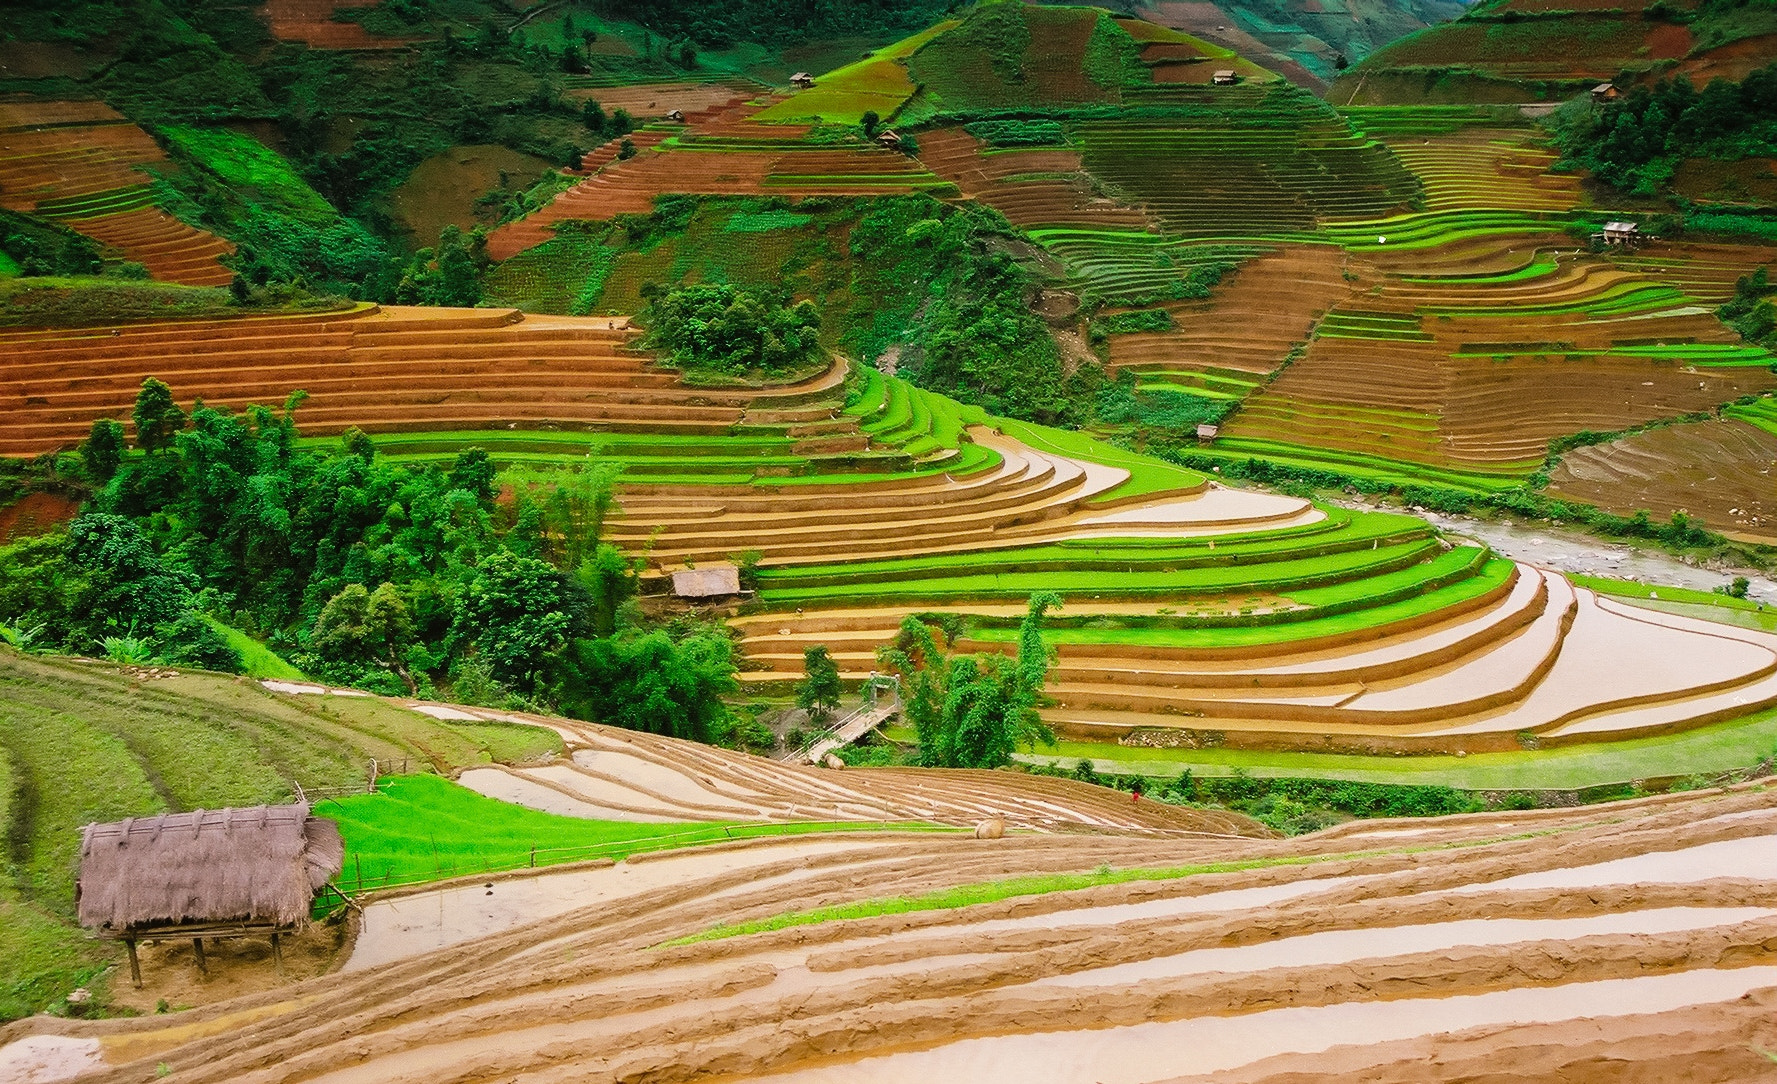 Photograph Rice terraces by hai nguyen on 500px